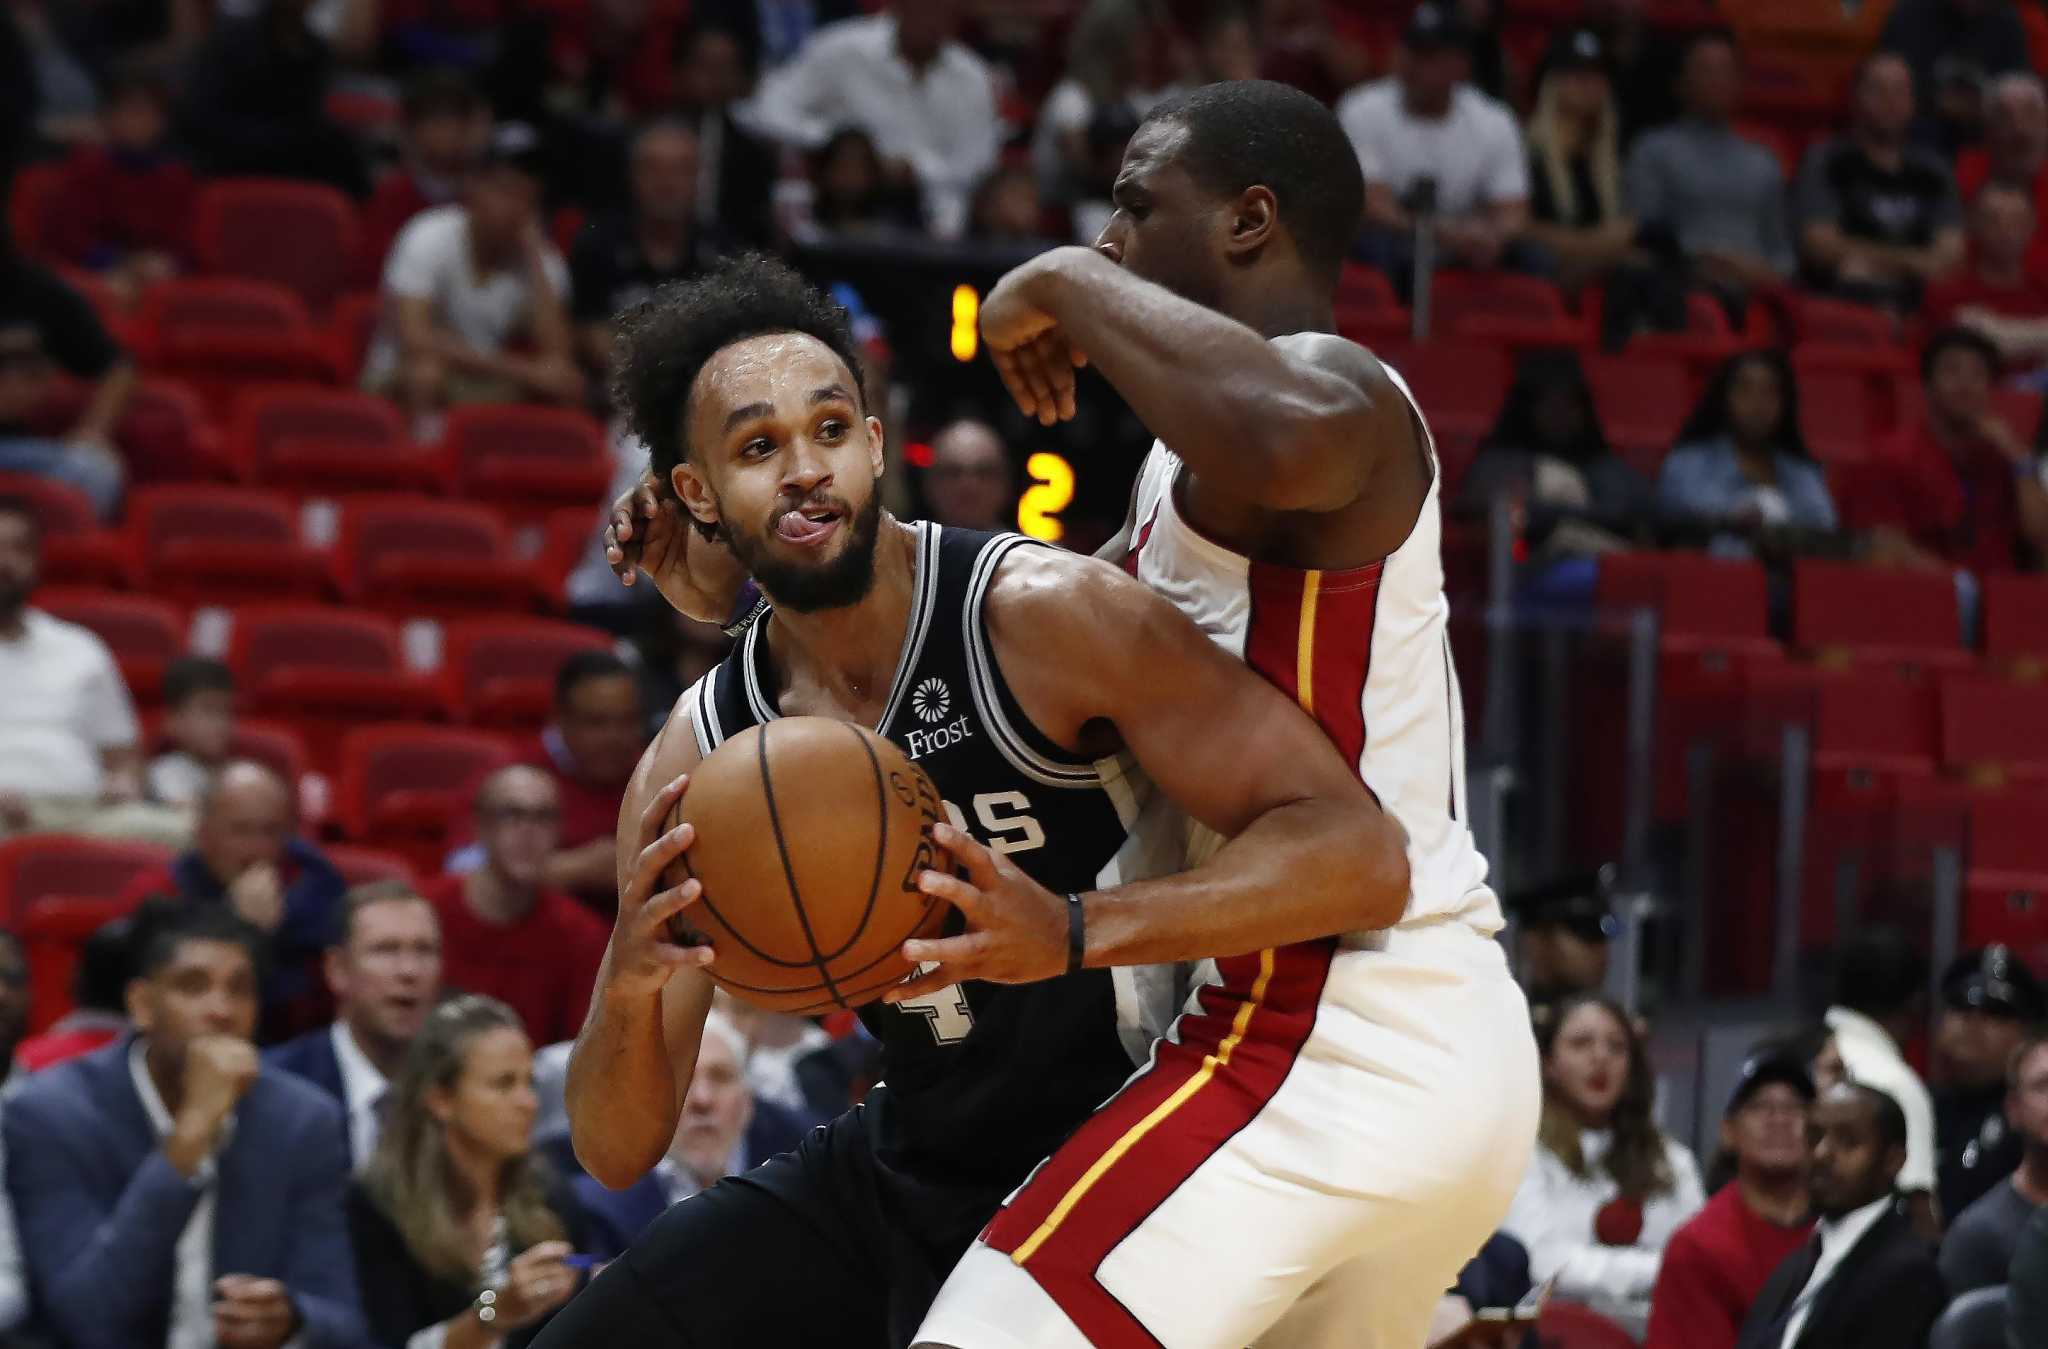 Spurs' slow start doesn't worry players